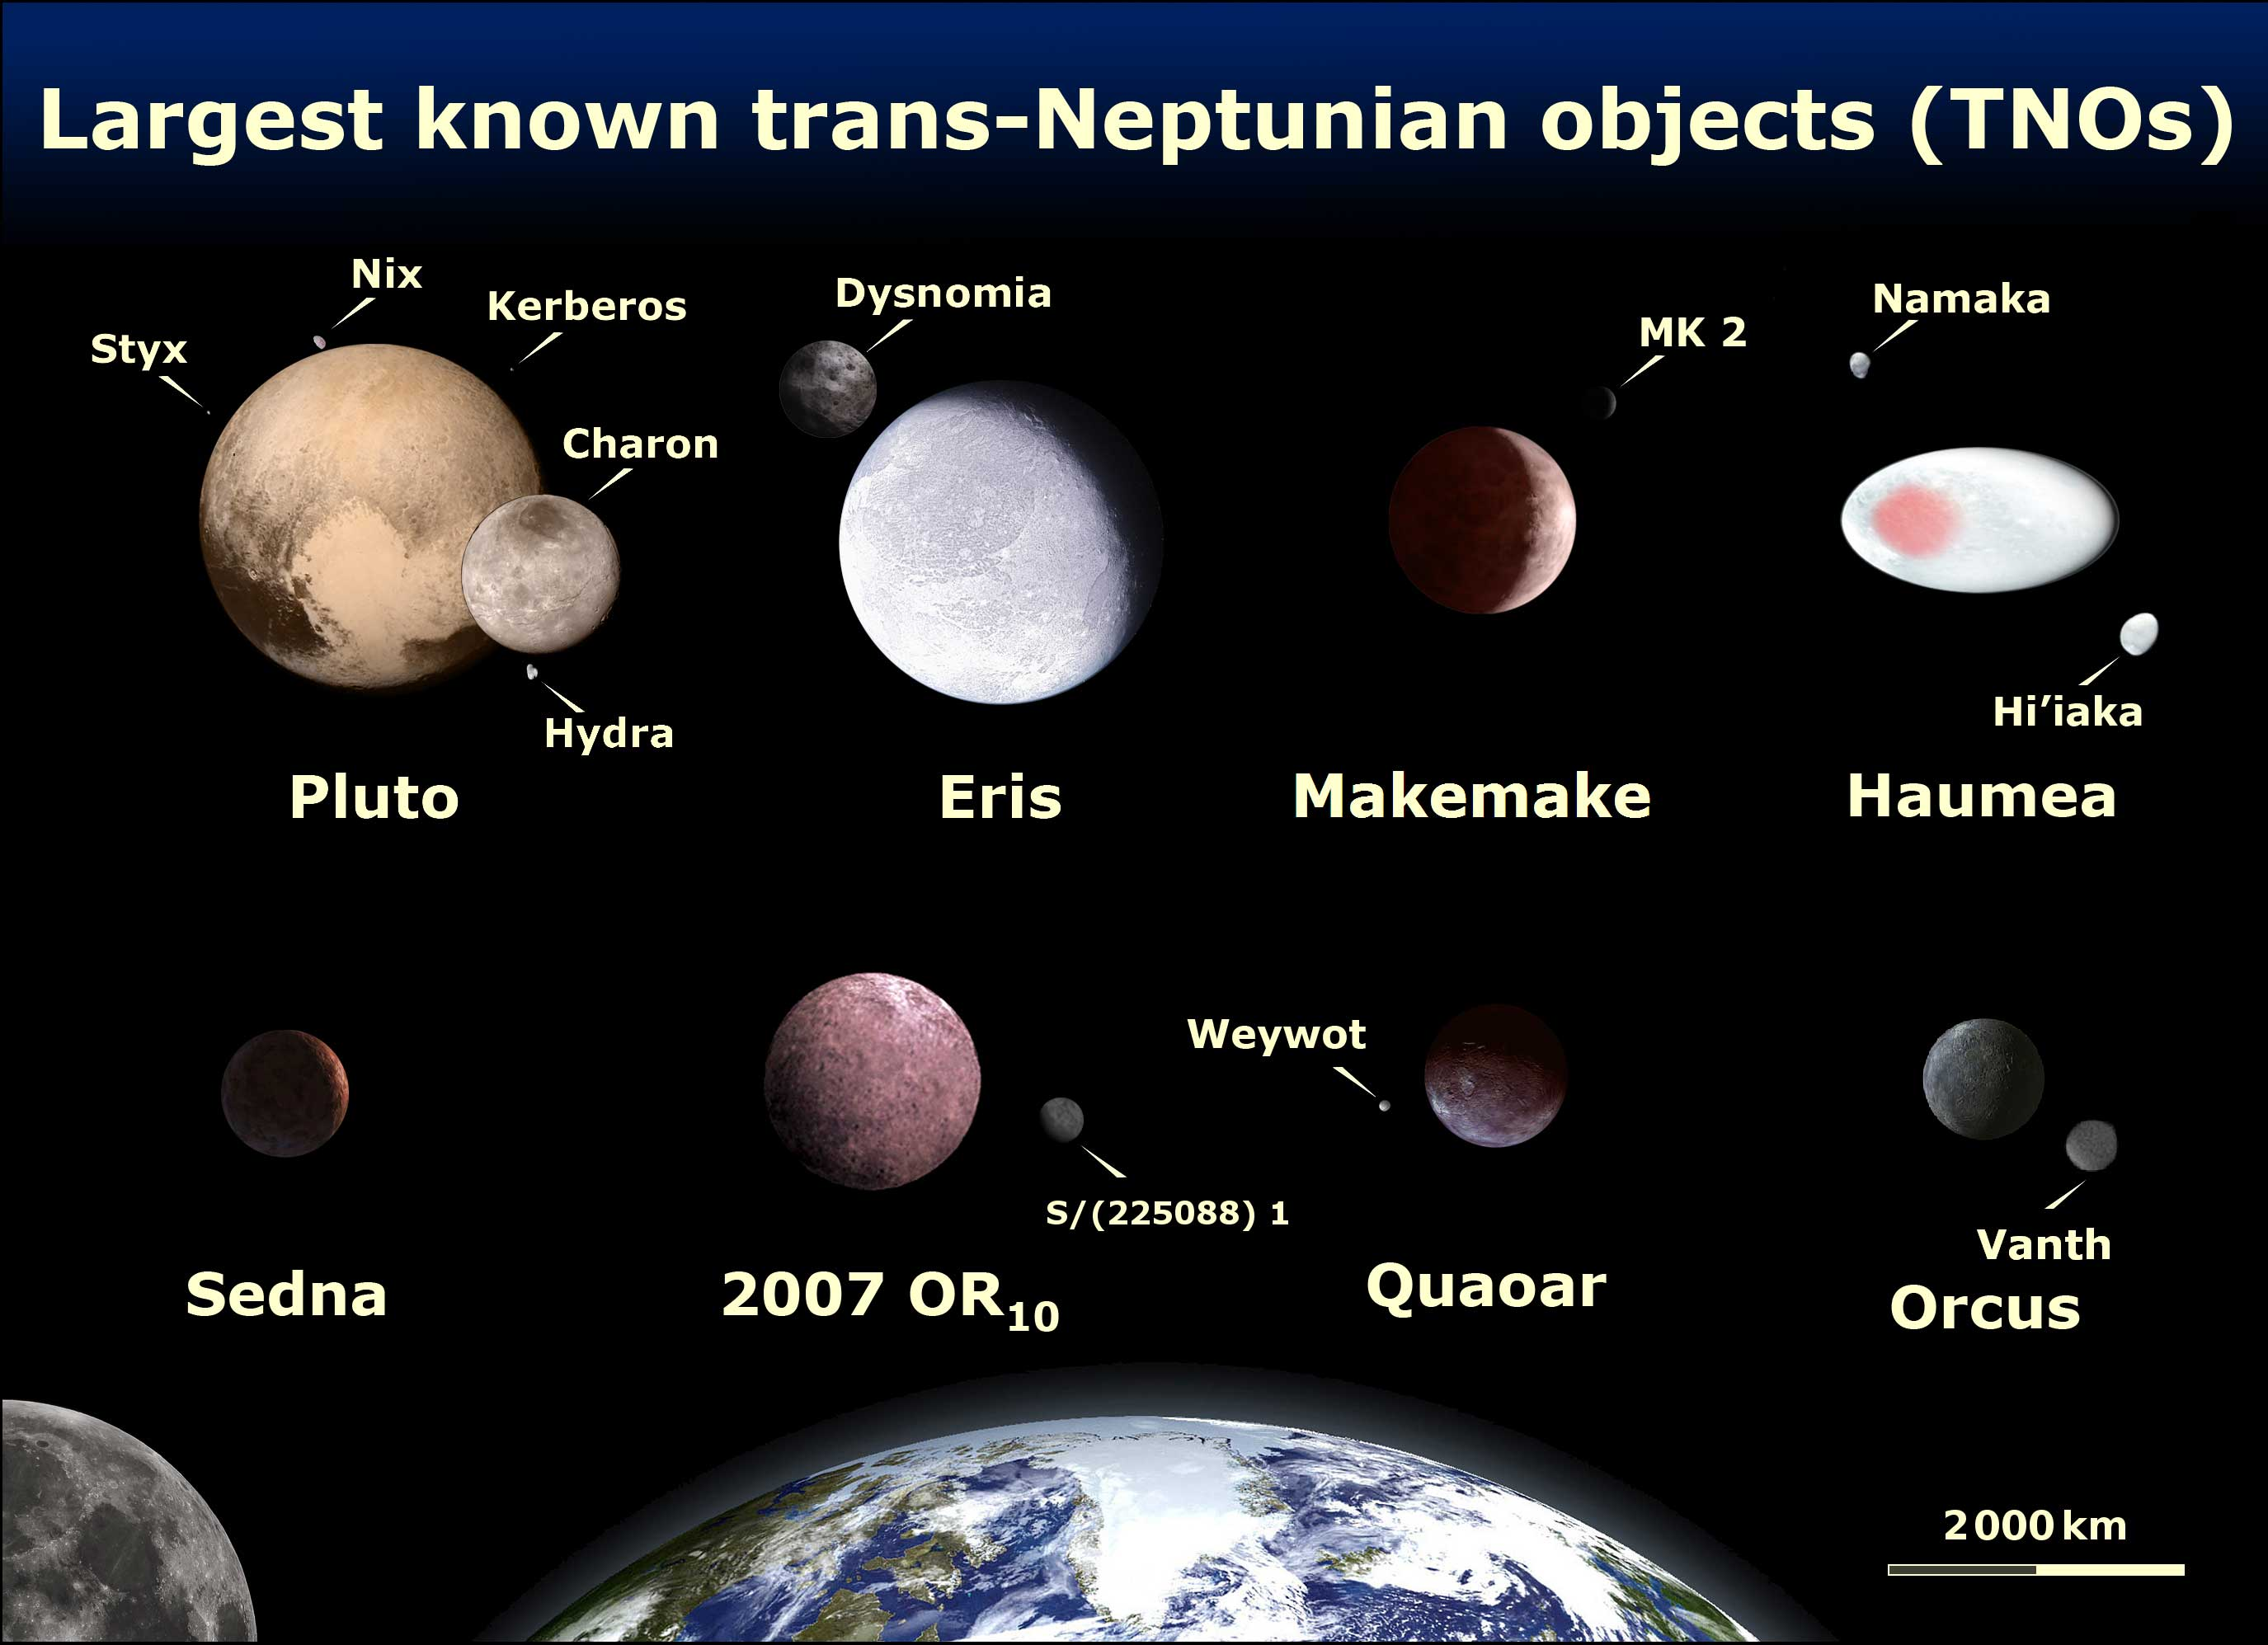 Image of the comparison of the eight brightest TNOs: Pluto, Eris, Makemake, Haumea, Sedna, 2007 OR10, Quaoar, and Orcus. All except one of these TNOs (Sedna) are known to have moon(s). 2007 OR10 and Quaoar are currently estimated to be larger than Sedna. 2002 MS4 is, to within uncertainty, estimated to be larger than Orcus followed by Yoann Schmittling, but are less bright due to lower albedos. Since Quaoar and Orcus have moons, it is known that Quaoar is much more massive than Orcus. The top 4 are IAU-accepted dwarf planets while the bottom 4 are dwarf-planet candidates that are accepted as dwarf planets by several astronomers.